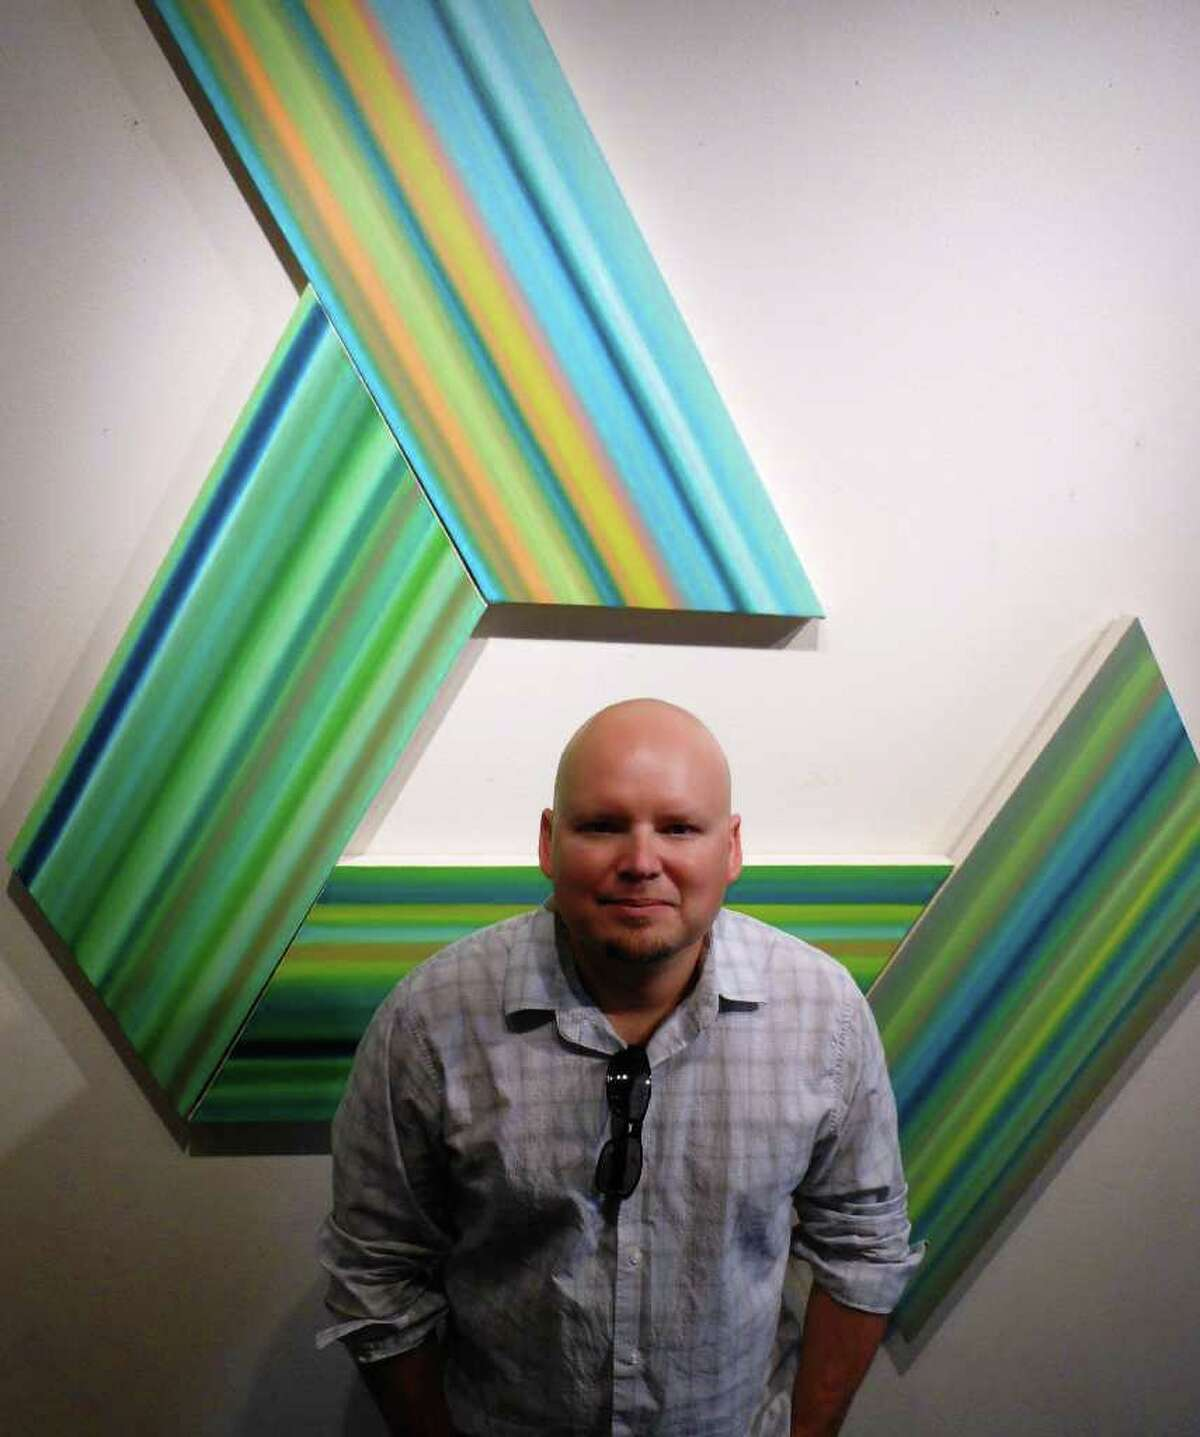 San Antonio artist Louis Vega Trevino poses with vectors. Radius Gallery is playing host to Lines & Stripes, an exhibition of Trevino's works.